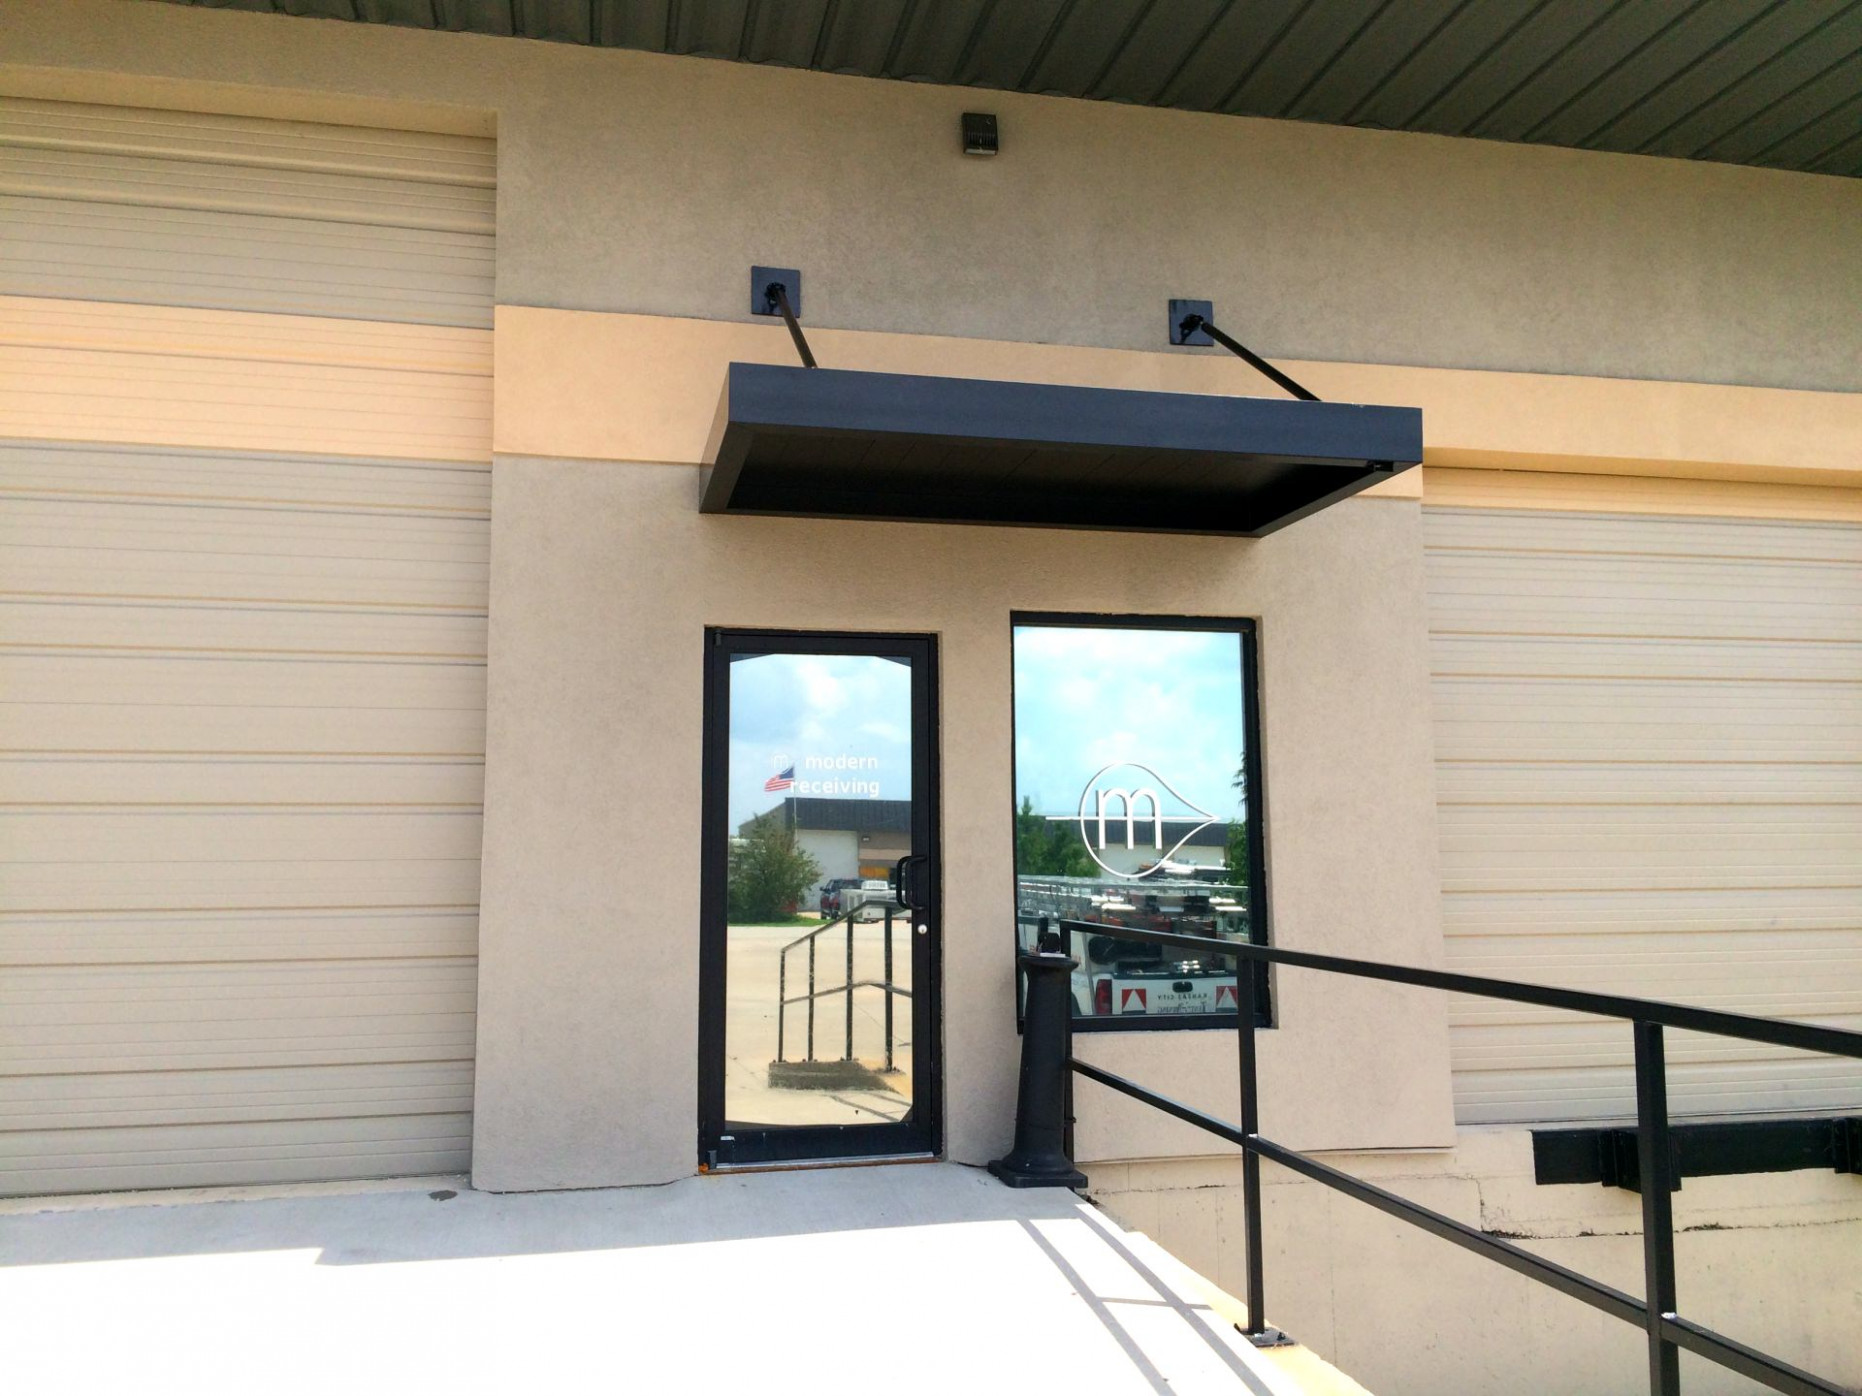 Commercial Awnings | Kansas City Tent & Awning | Metal ..